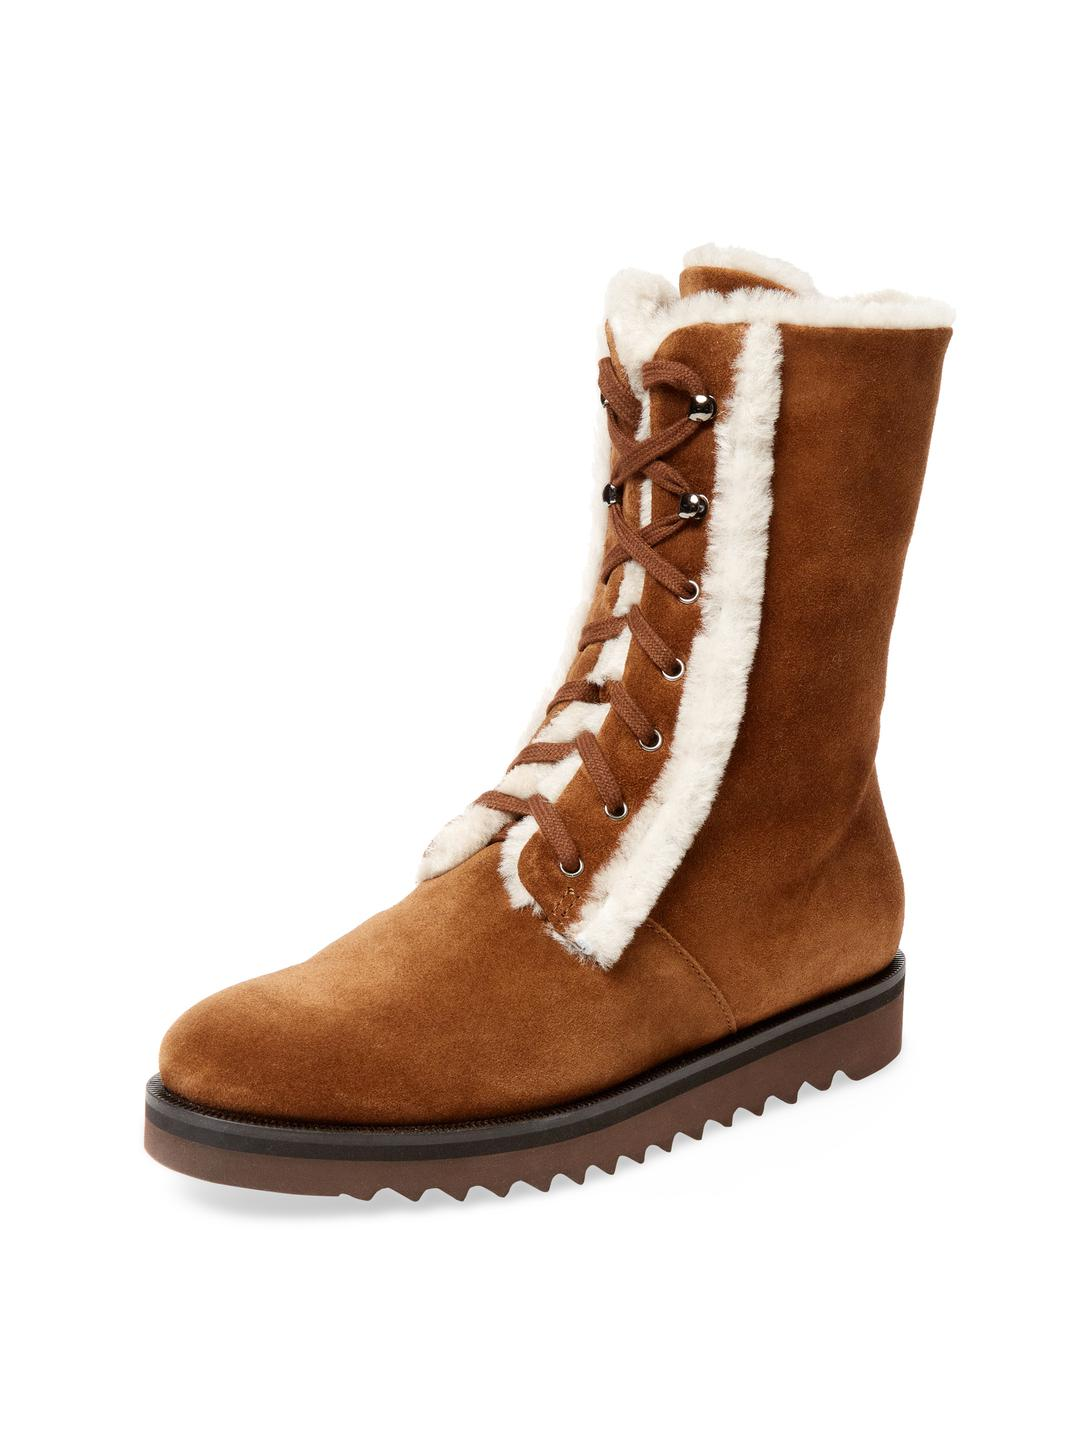 5c5ce3ace54d Lyst - Aquatalia Payton Suede Winter Boot in Brown